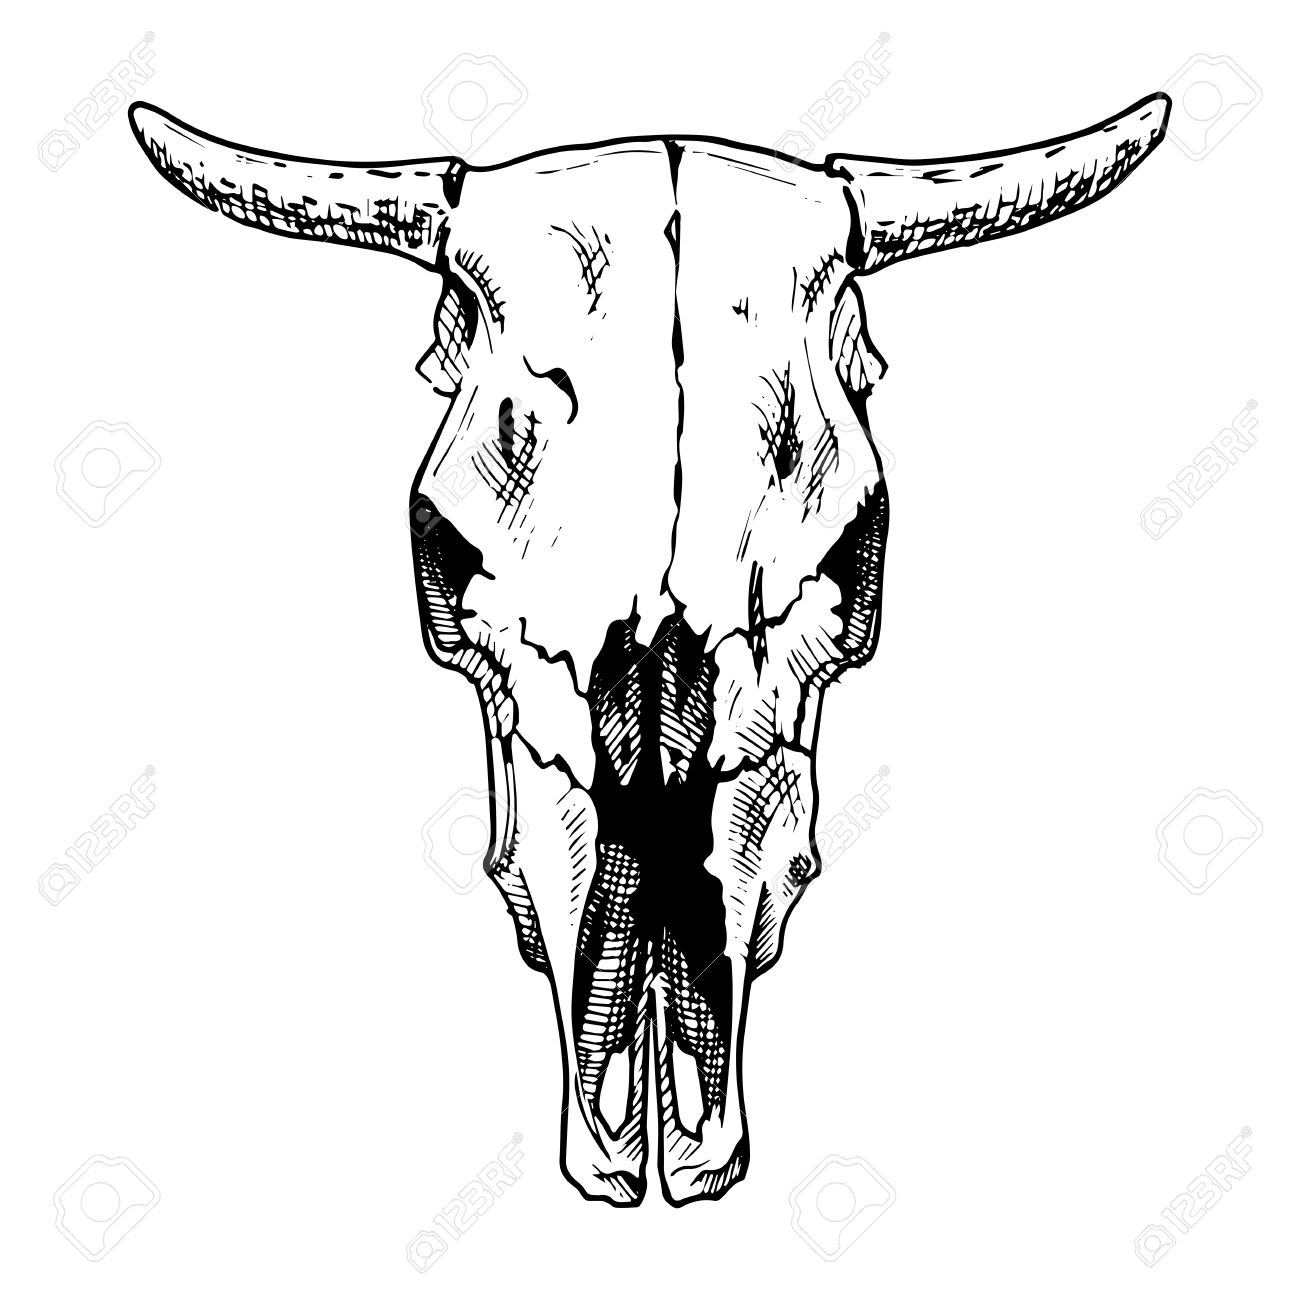 vector illustration of cow skull stylized as engraving face